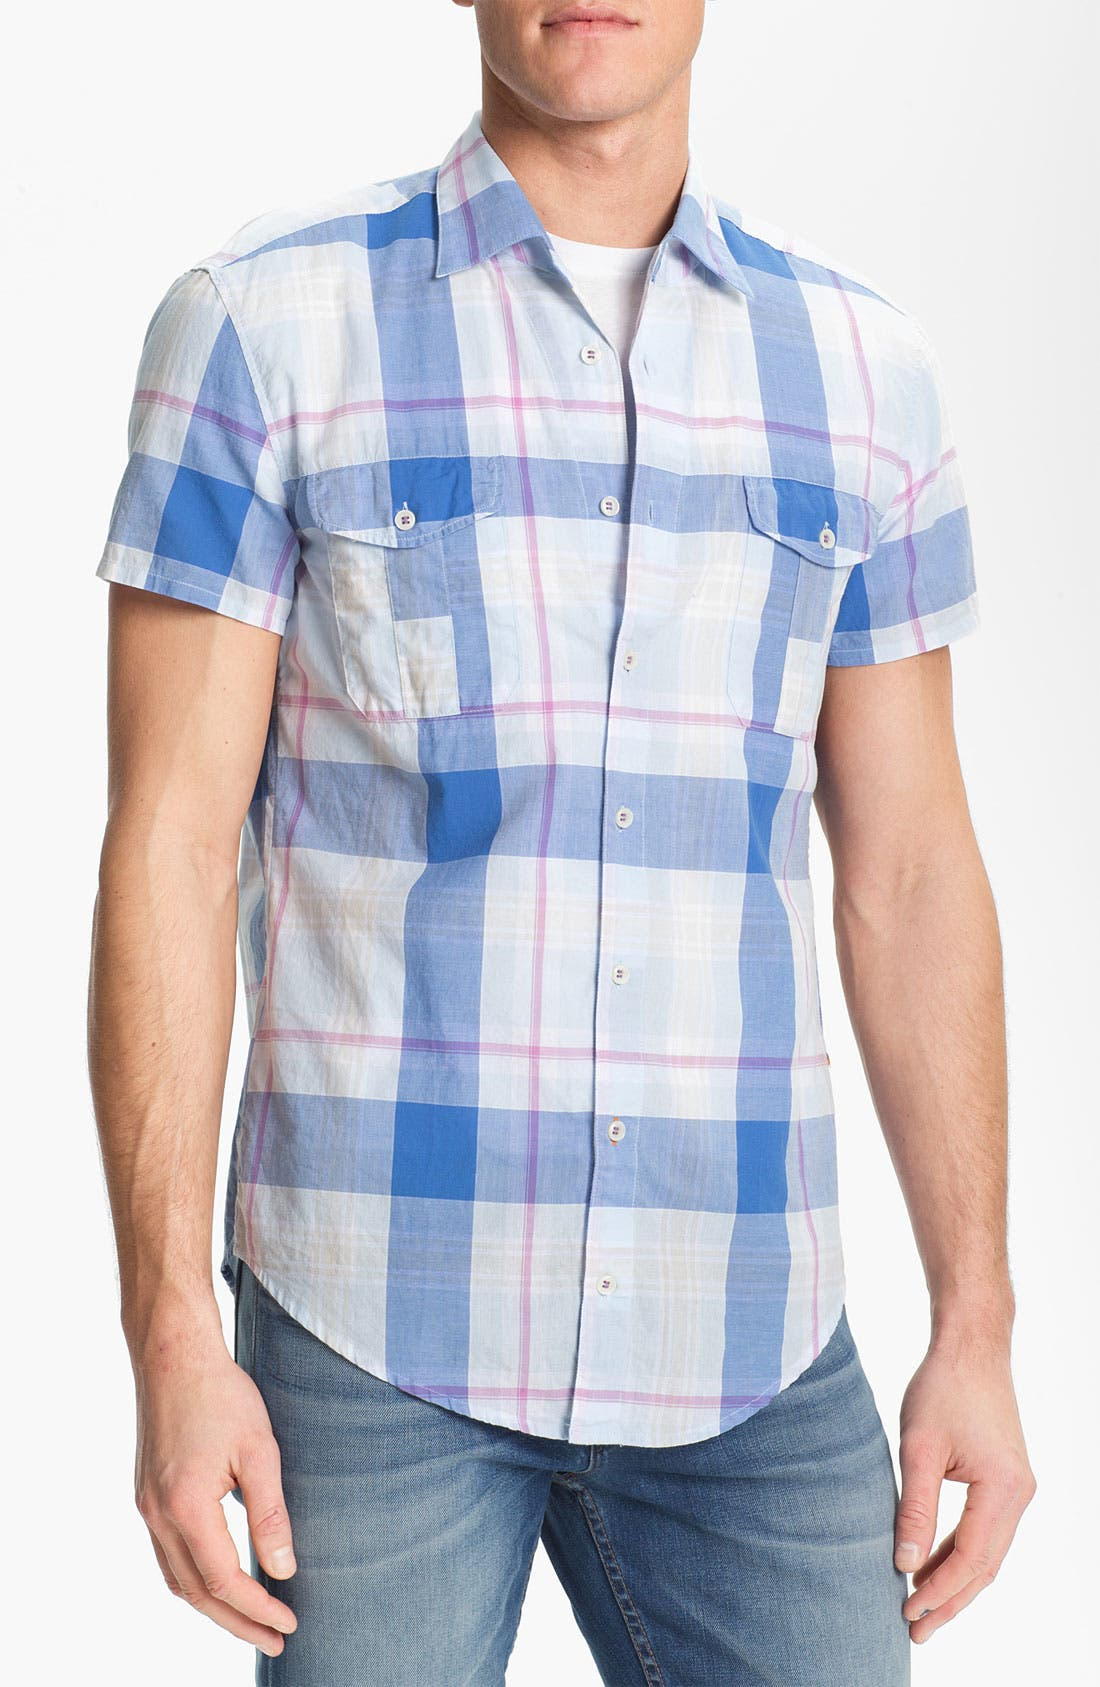 Alternate Image 1 Selected - BOSS Orange Plaid Woven Shirt